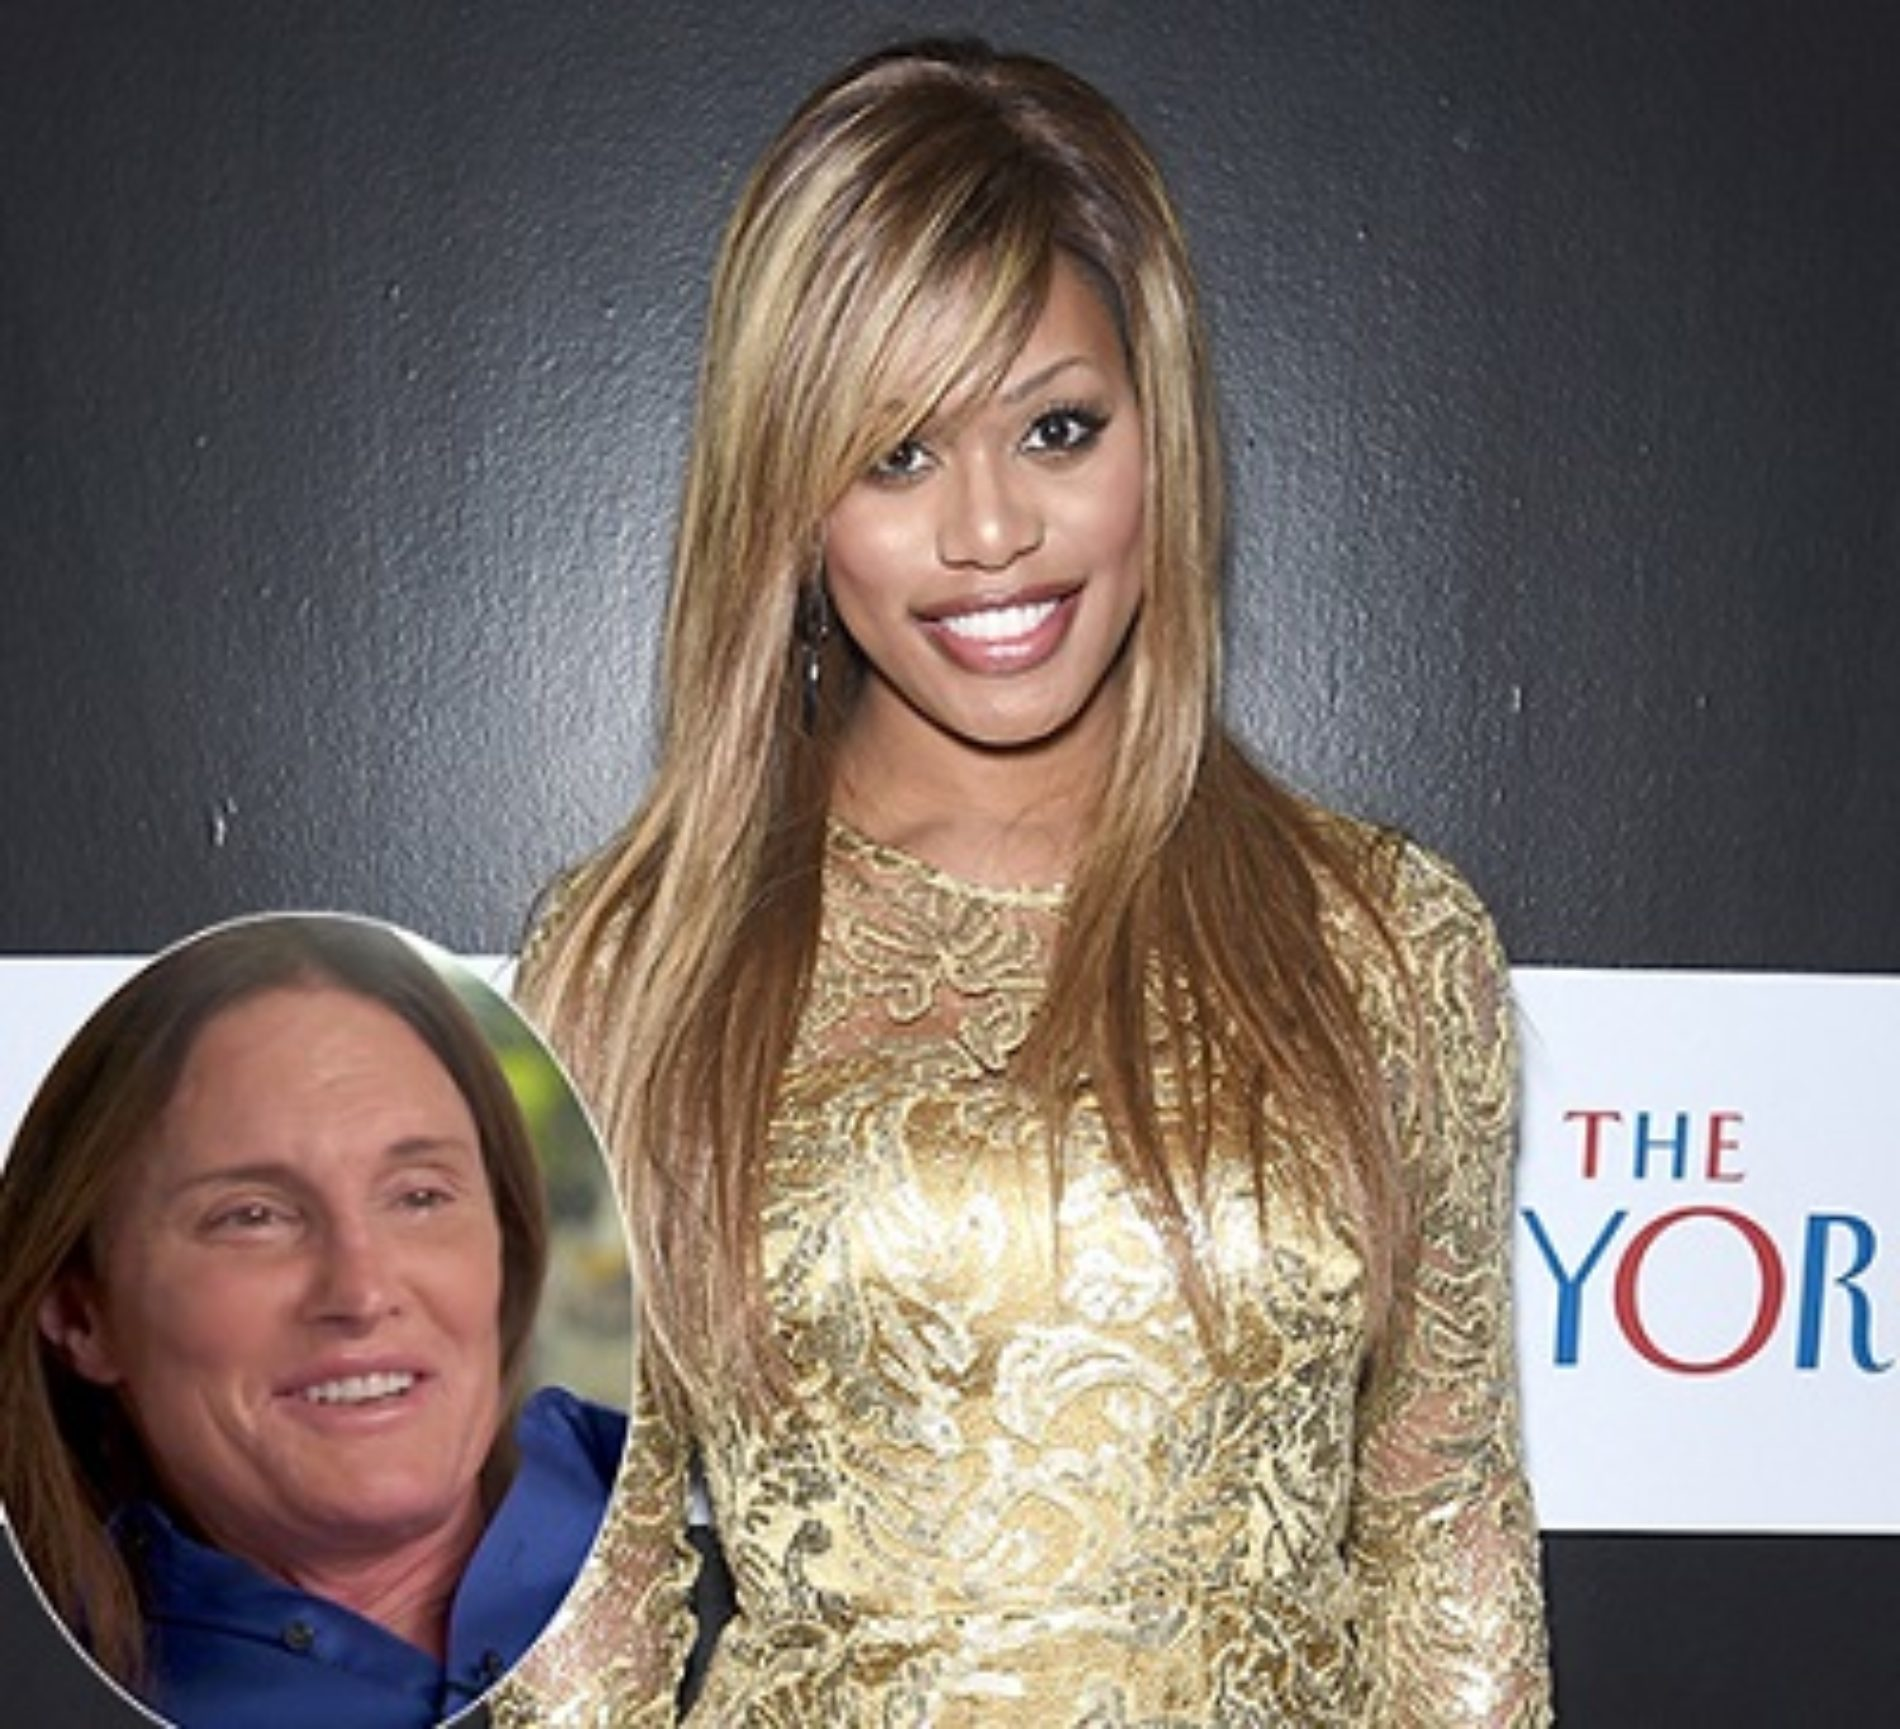 Bruce Jenner Made Contact With Laverne Cox